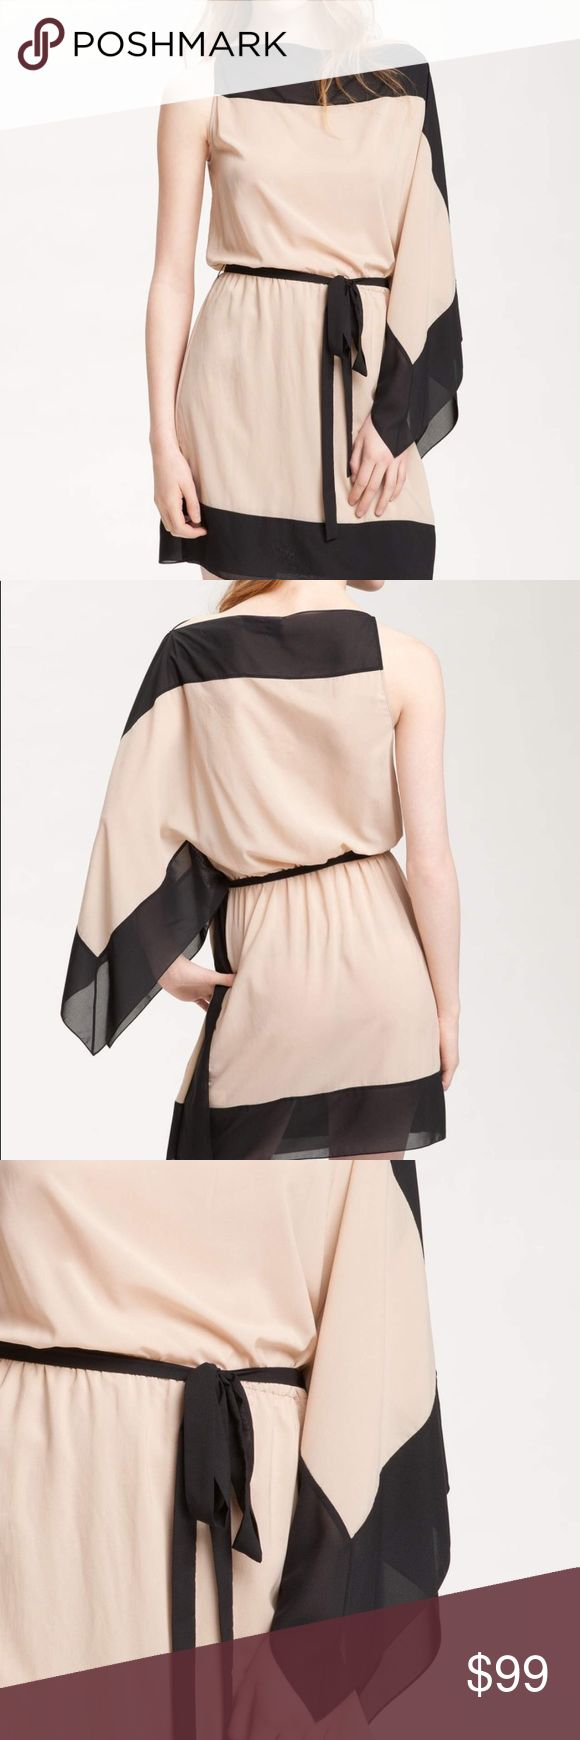 "Robert Rodriguez Colorblock Cascade Sleeve Dress Inky chiffon frames a soft nude dress, designed with side pleats and a fluttery cascade sleeve for dramatic contrast. * Approx. length from shoulder to hem: 34"". * Lined. Robert Rodriguez Dresses Mini"